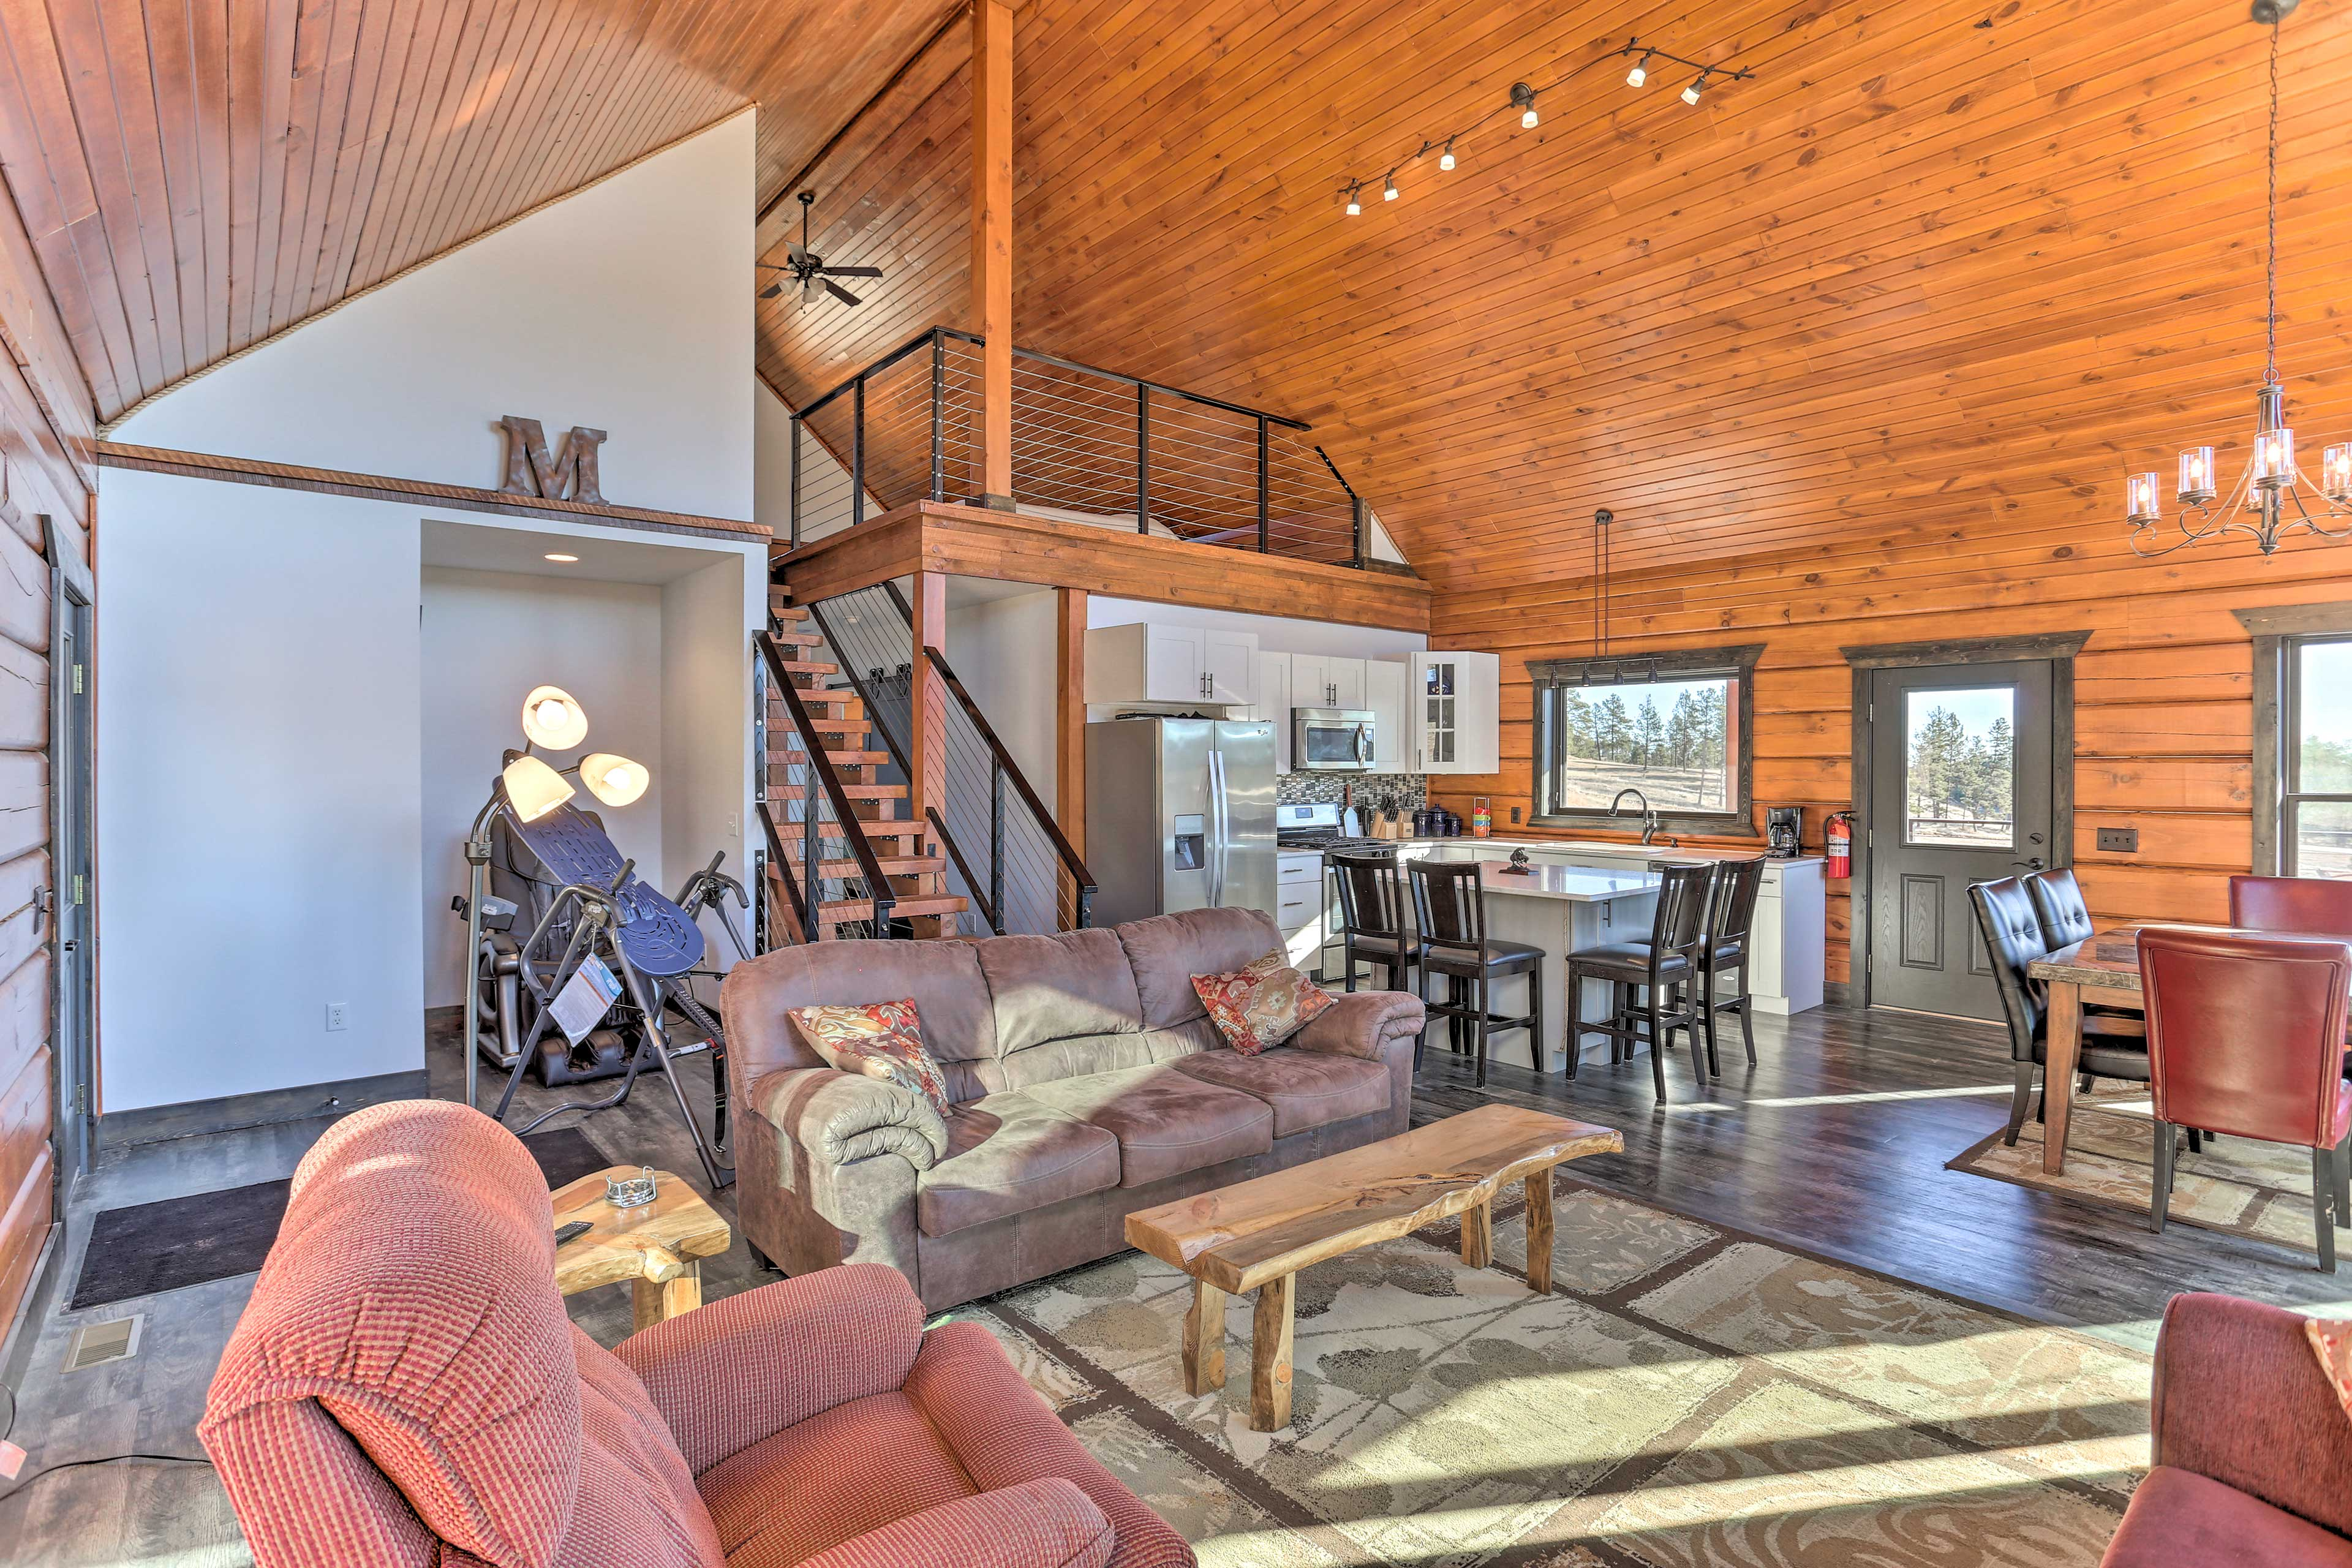 Soak in the panoramic views from the array of seating in the living space.